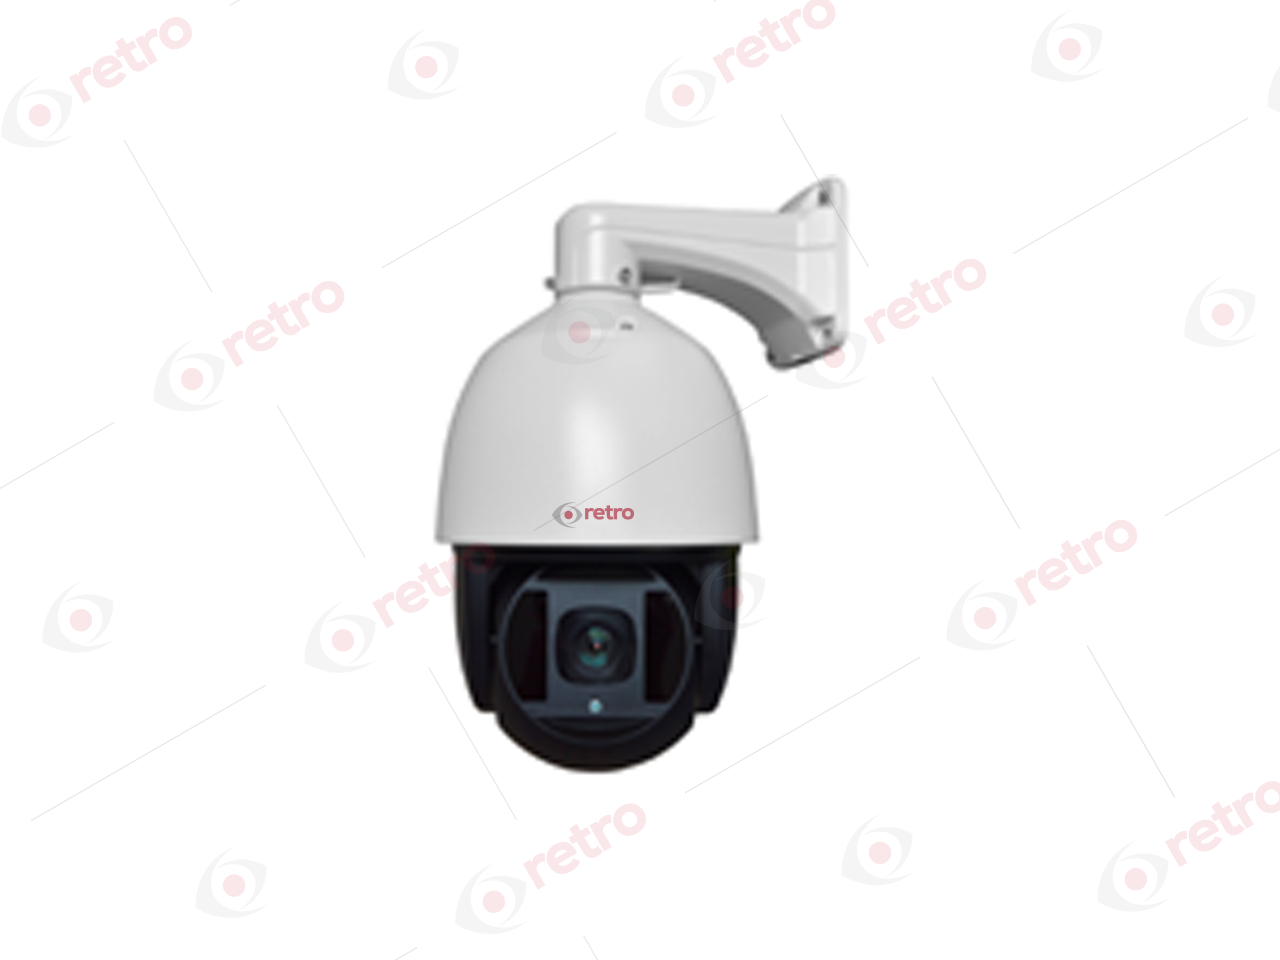 RT-4093 AHD 1.3 MEGAPİKSEL 960P LAZER LED SPEED DOME AHD KAMERA